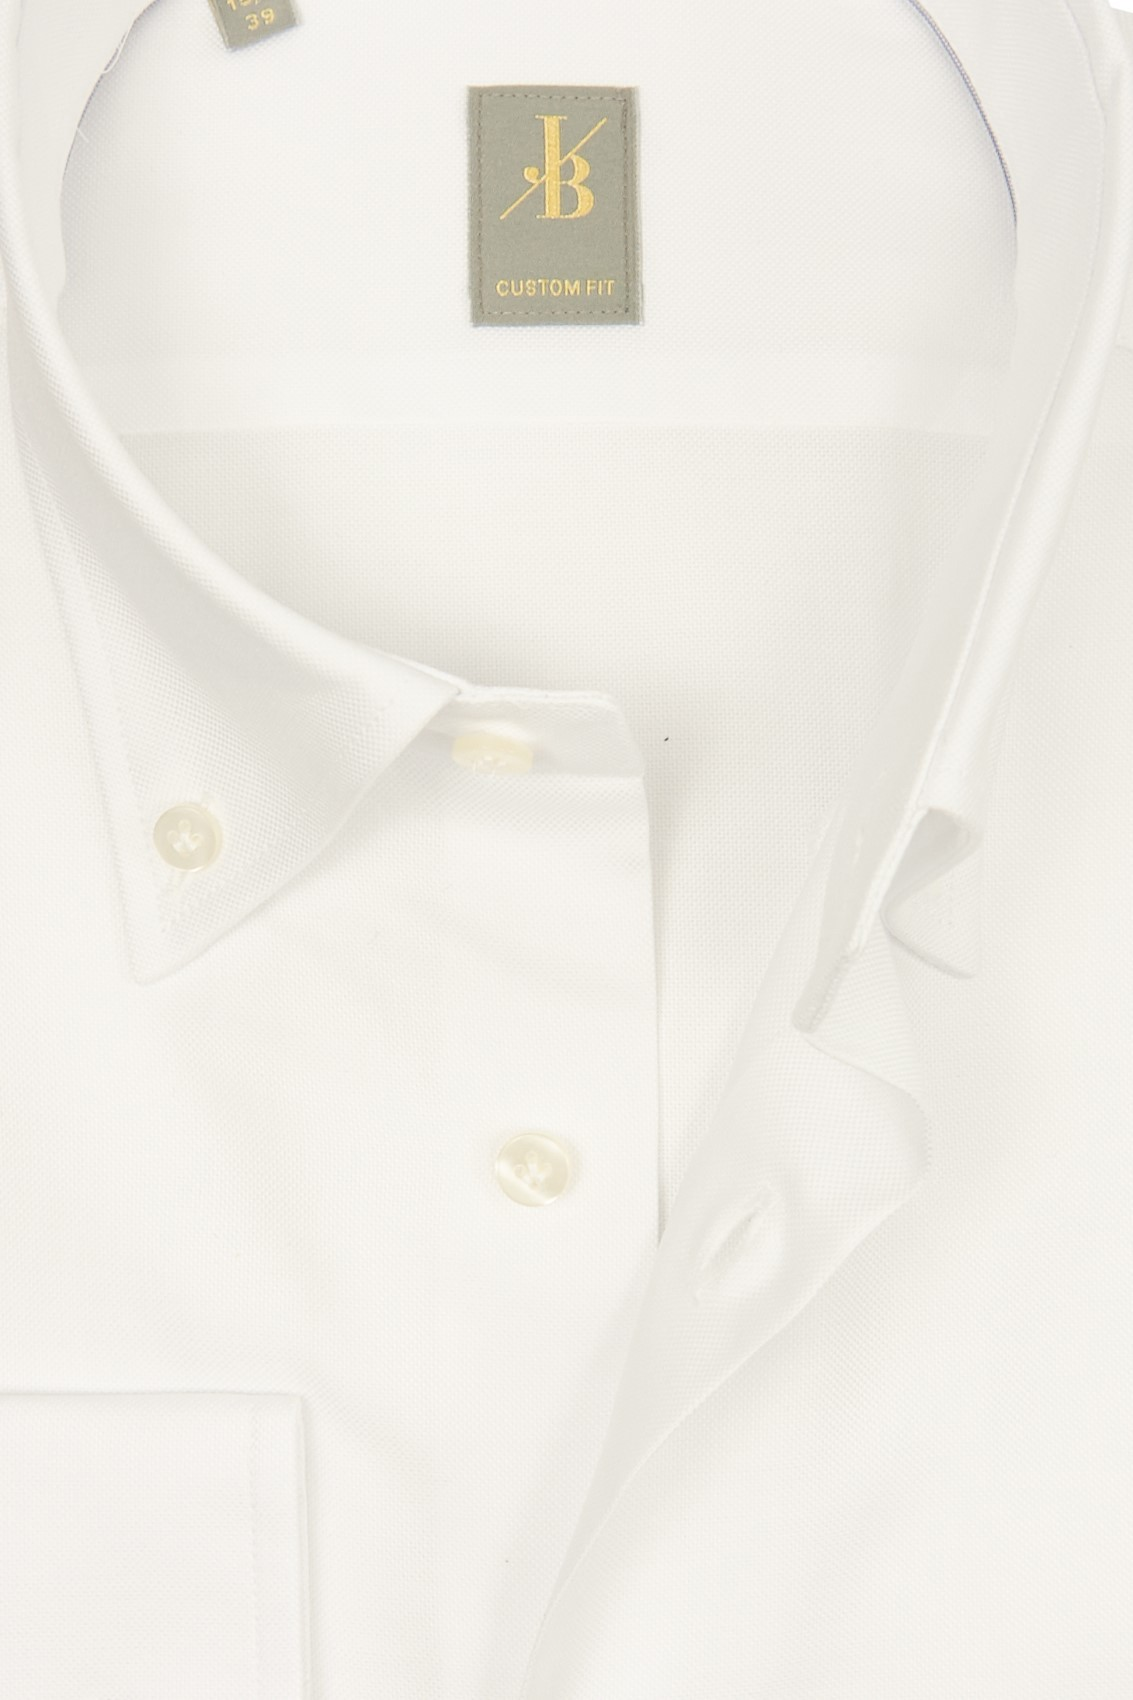 Overhemd Wit.Jacques Britt Overhemd Wit Oxford Button Down